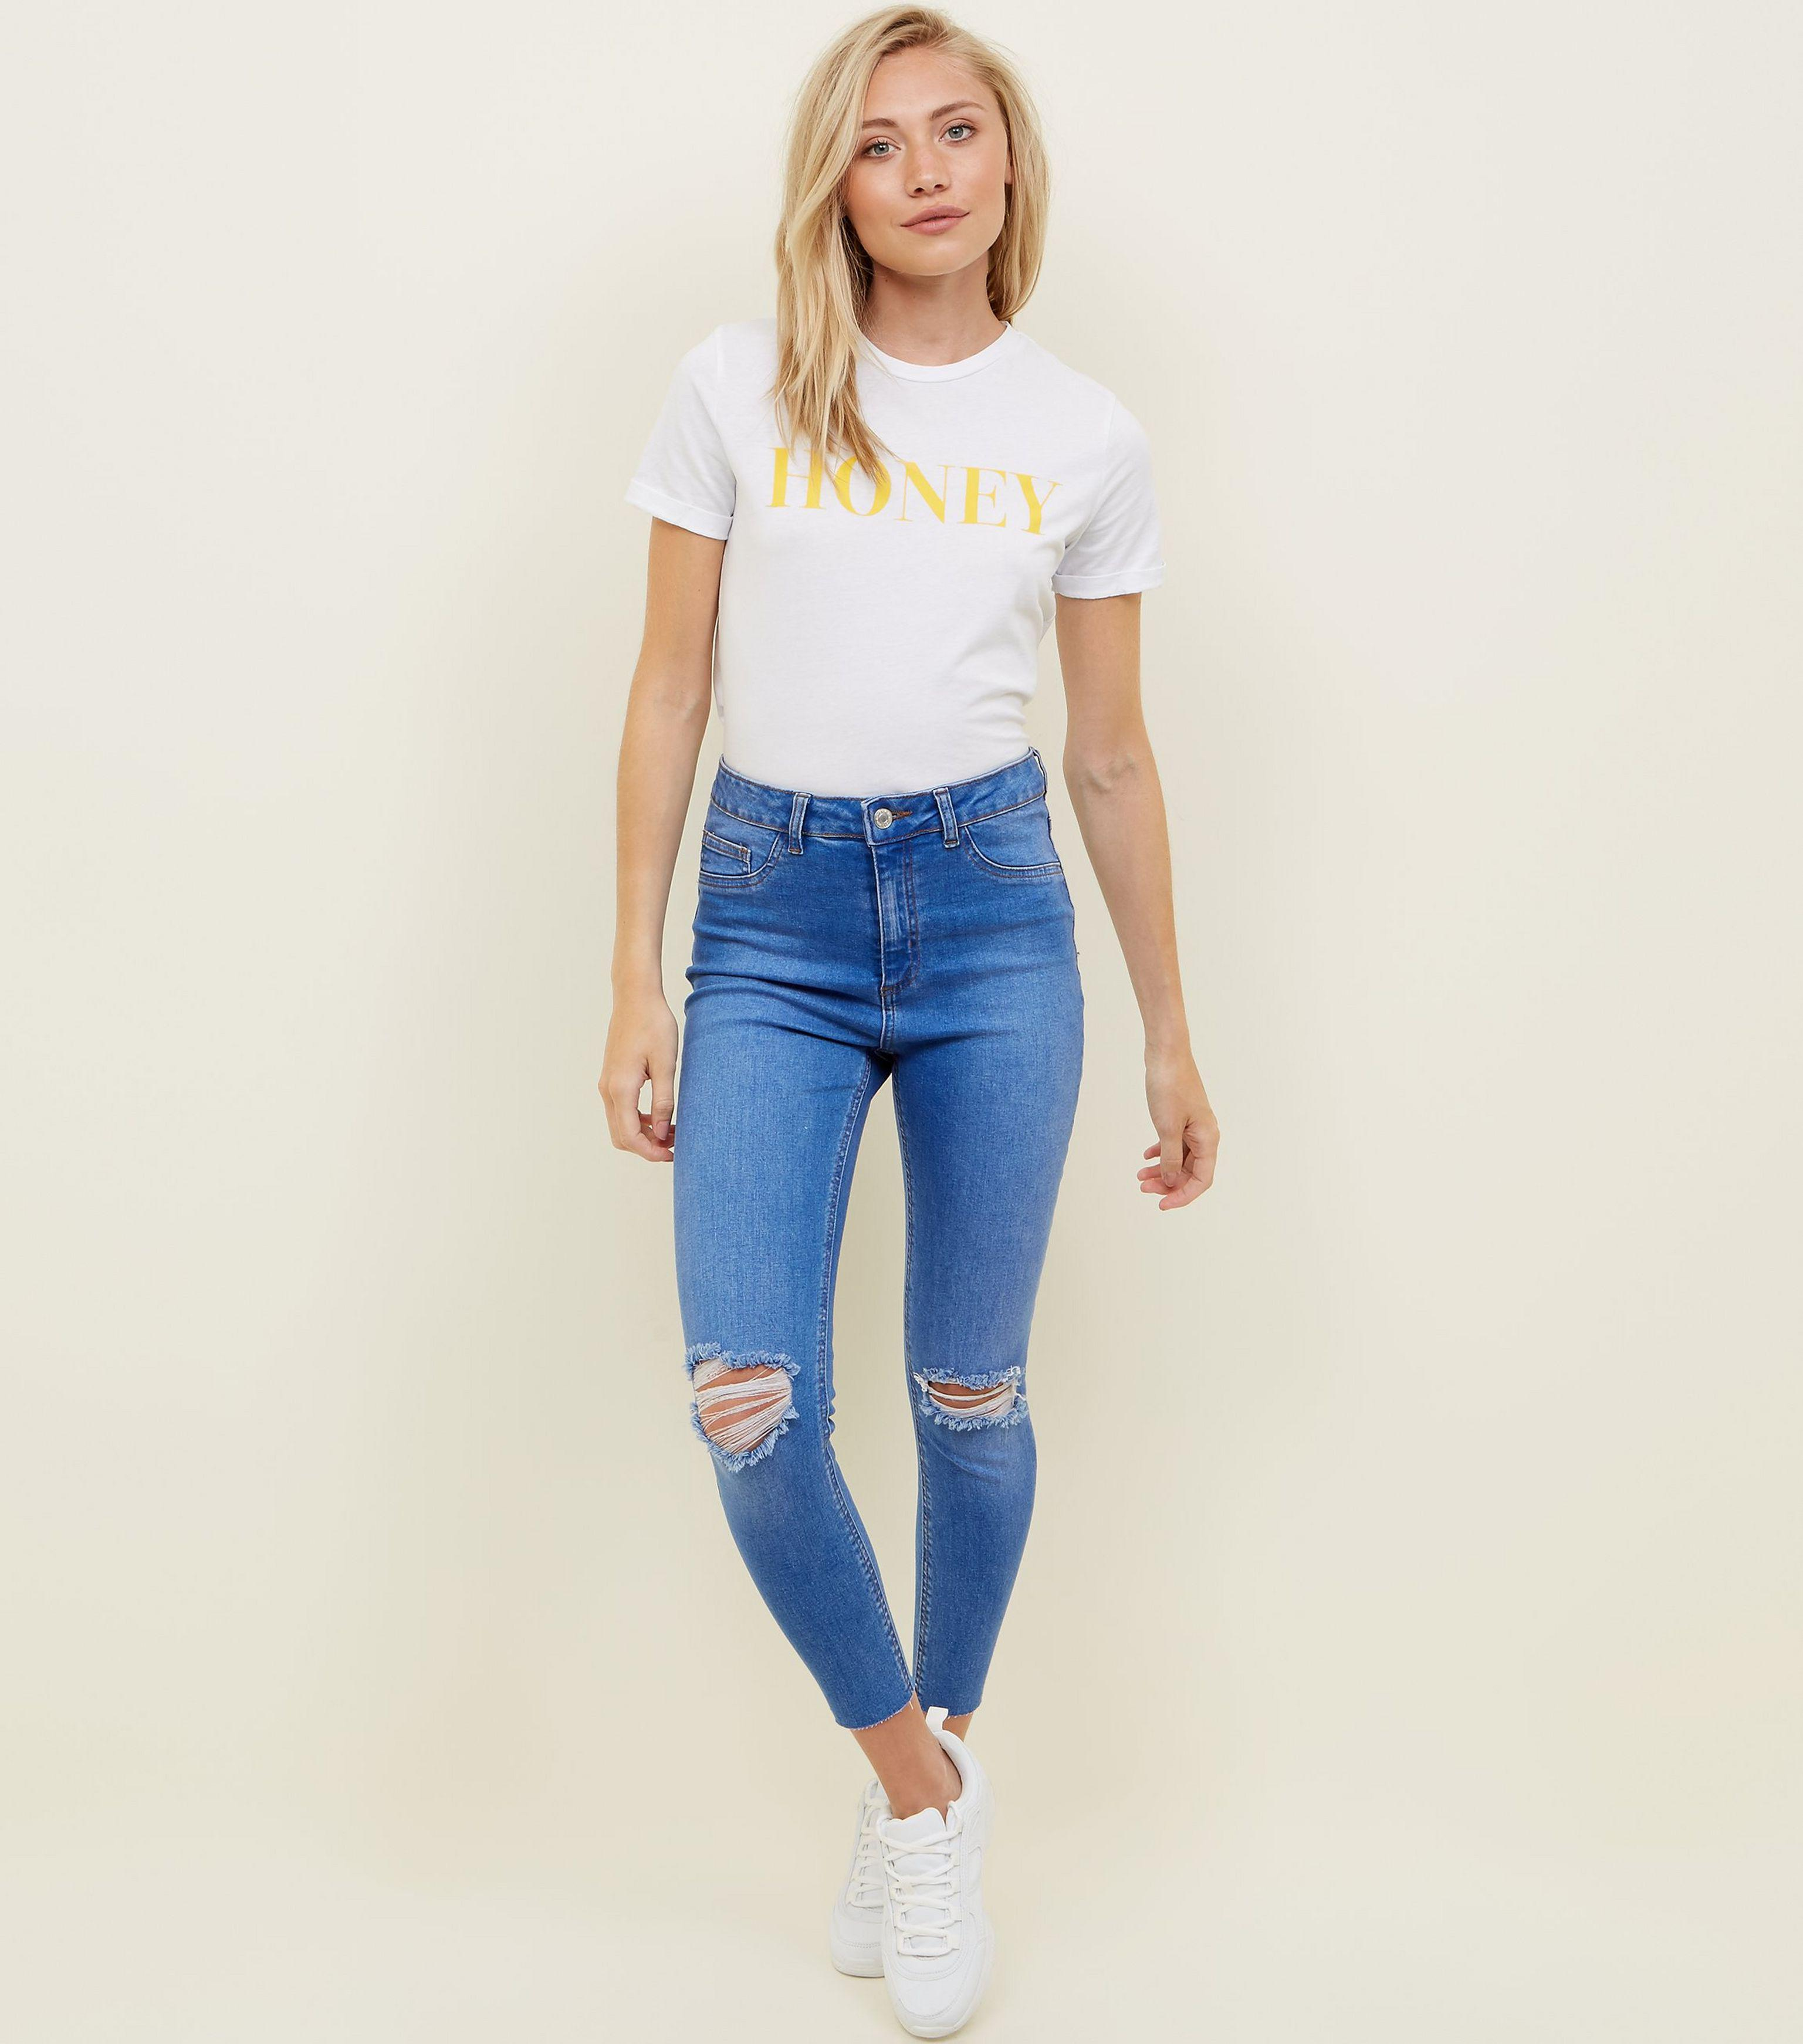 f2fe146a5513 New Look Petite Bright Blue Ripped High Waist Super Skinny Jeans in ...